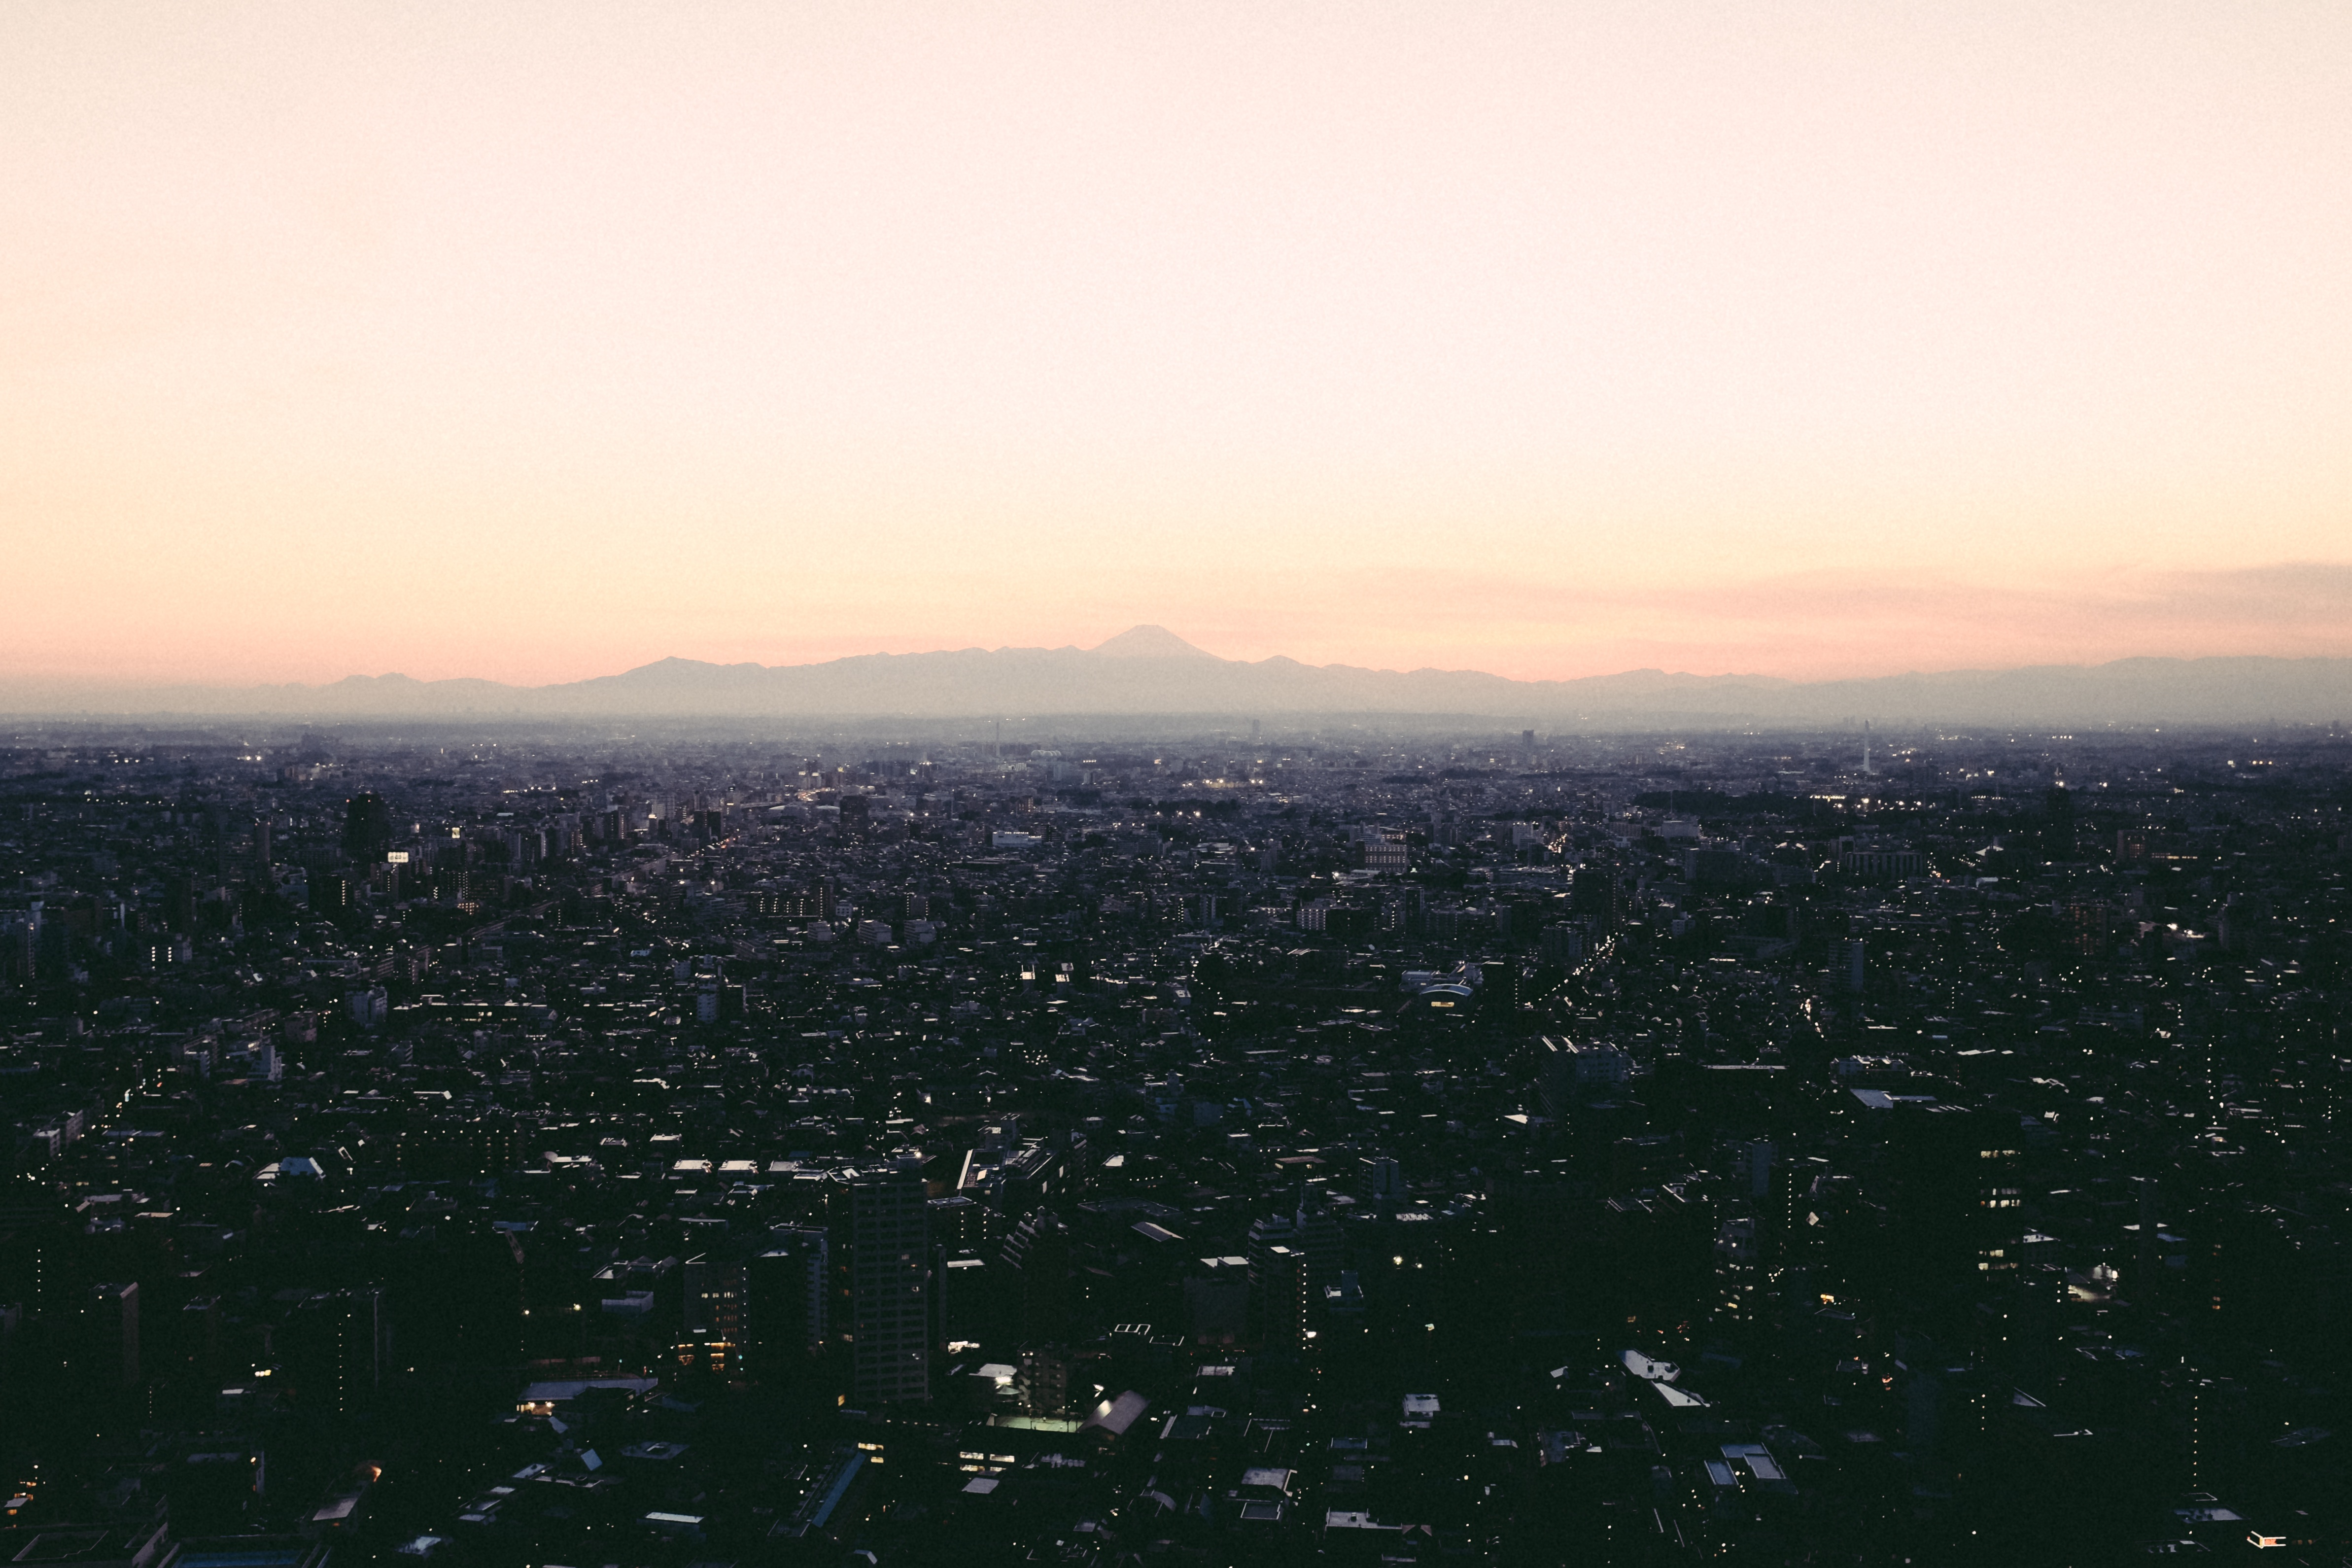 Sunrise In Japan, Buildings, City, Engineering, Mountains, HQ Photo